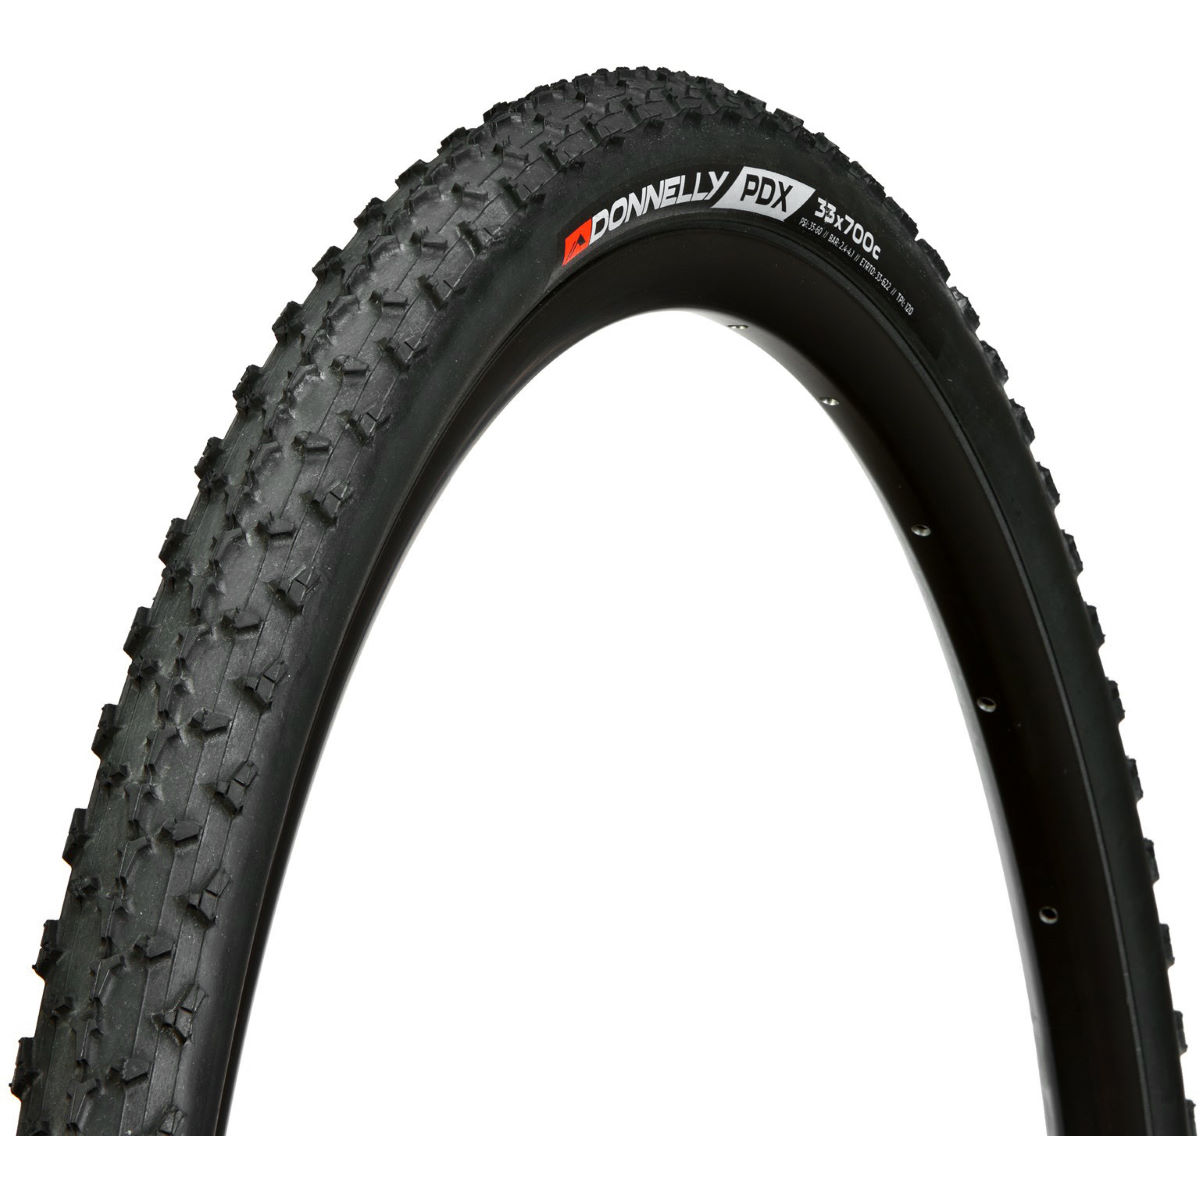 Donnelly Donnelly PDX 120TPI SC CX Folding Tyre   Tyres